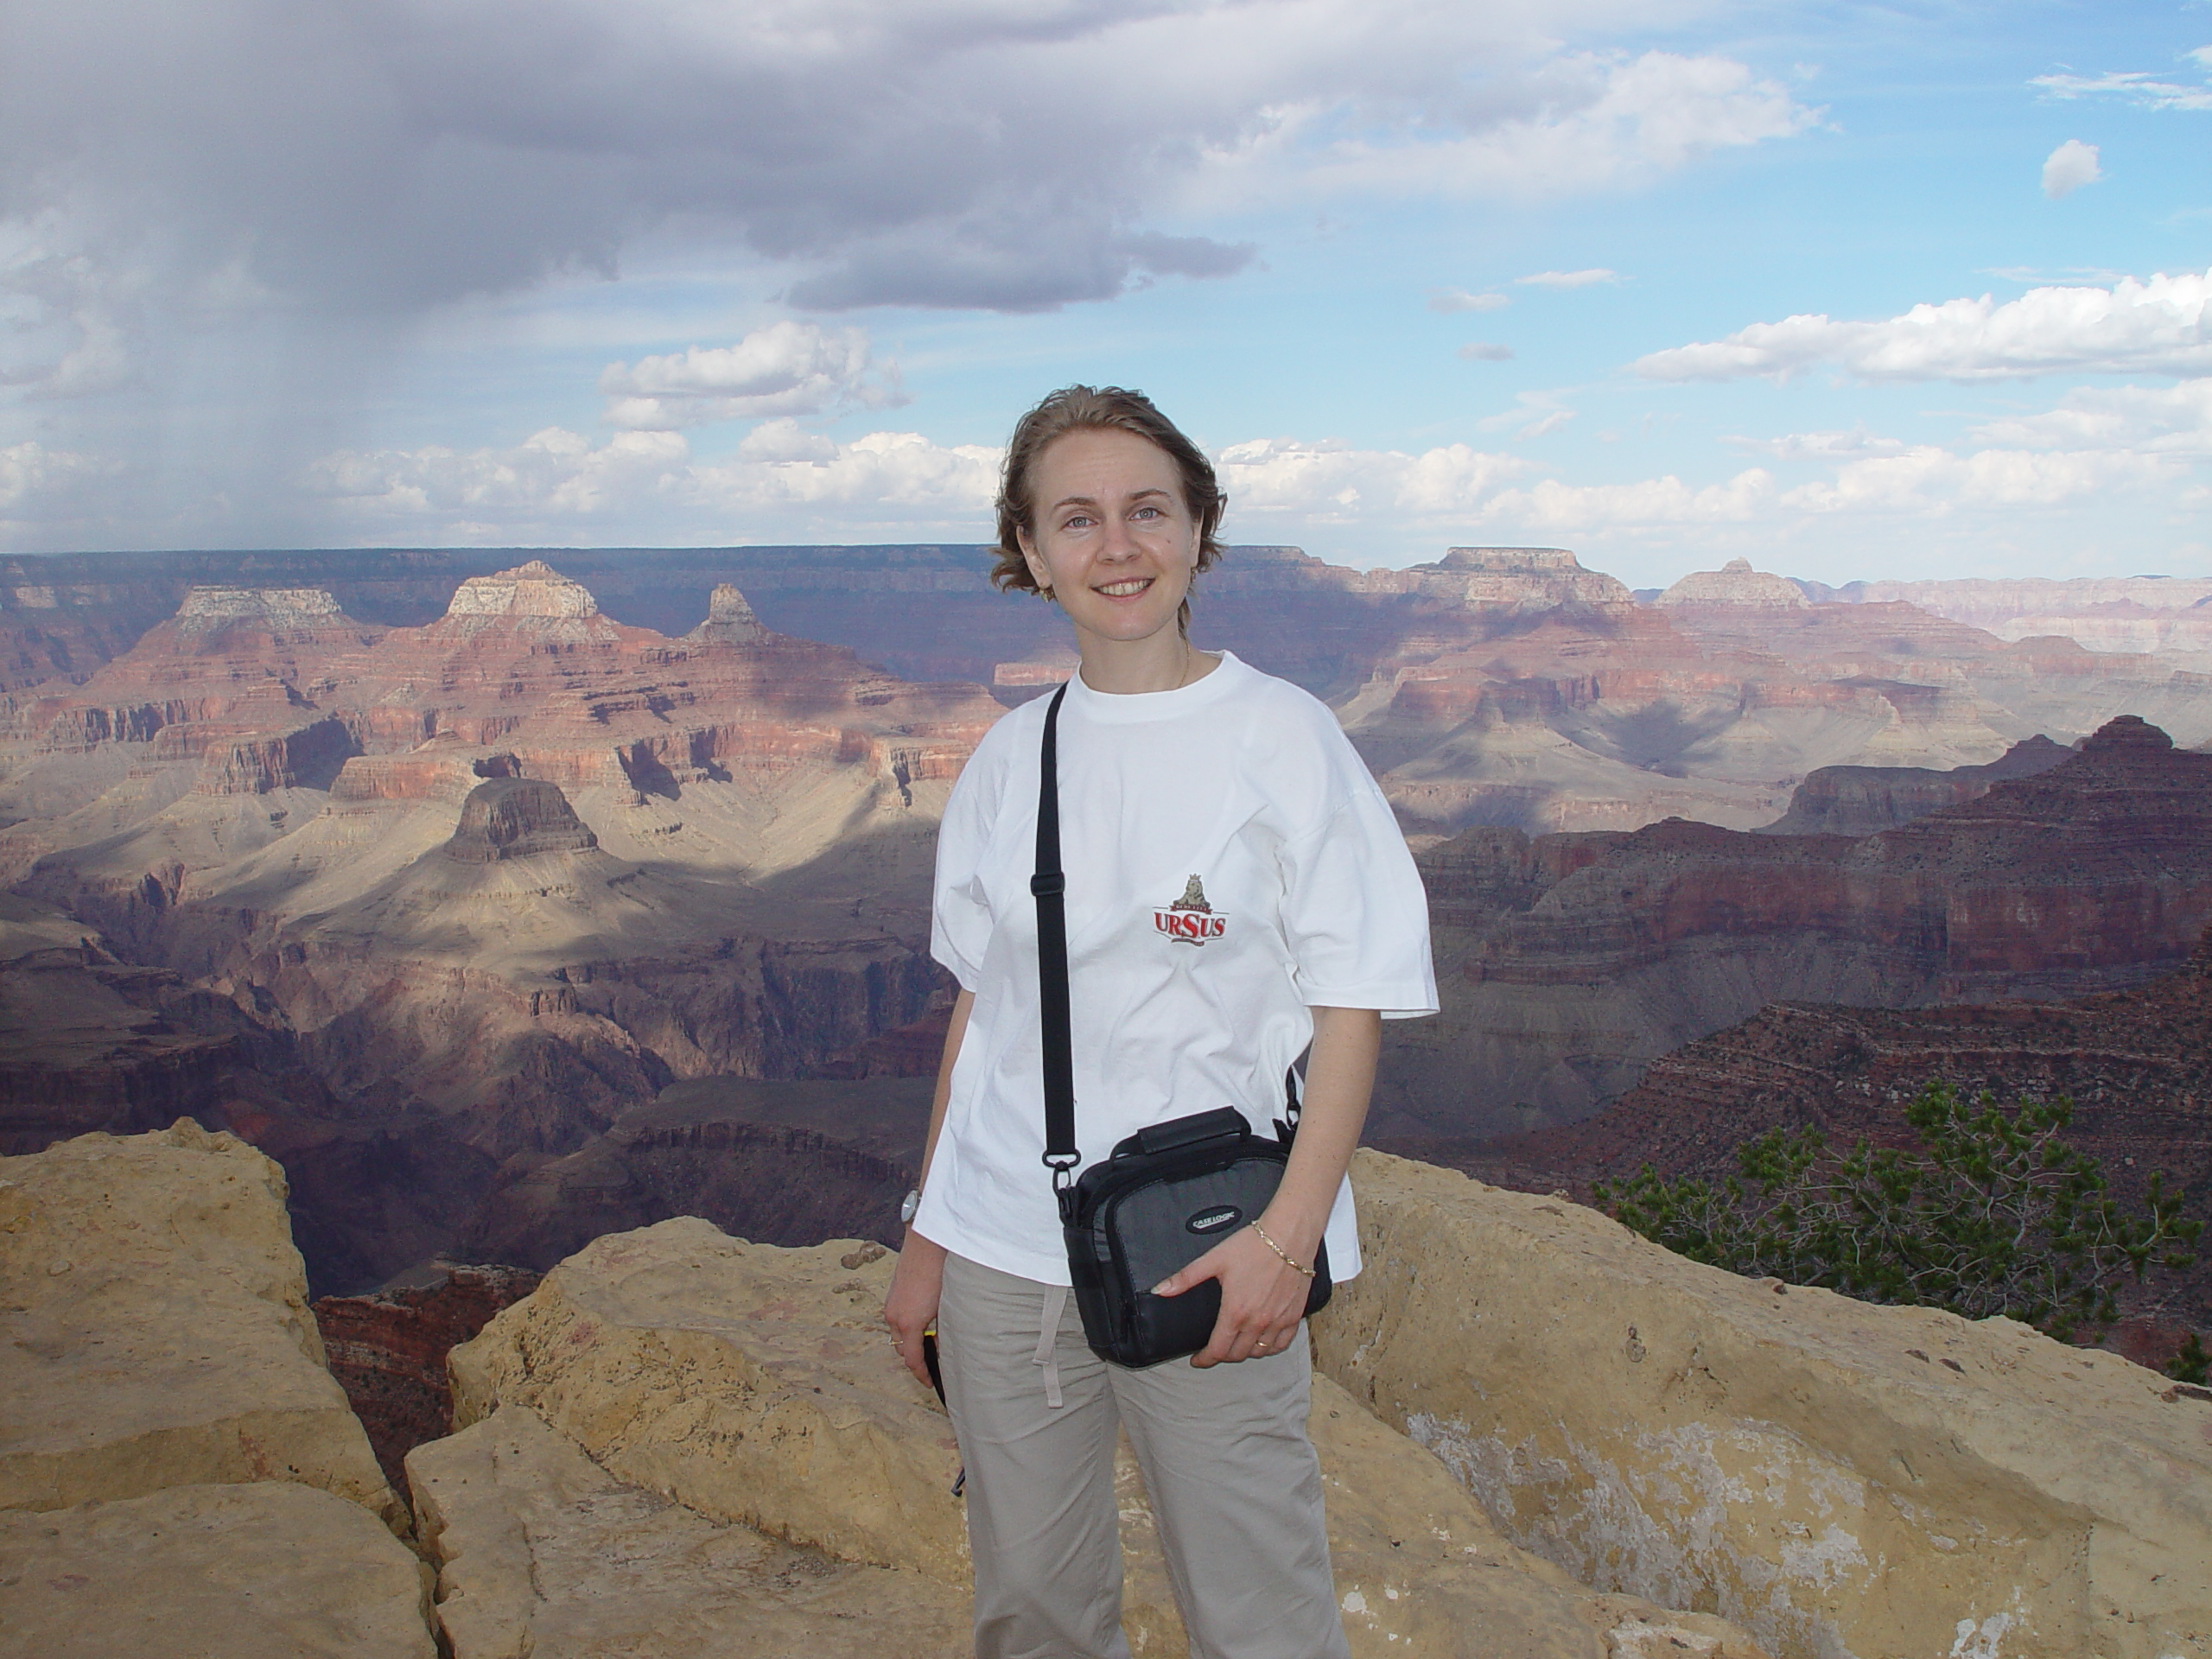 Oana visiting the Grand Canyon in July, 2002 shortly after arriving in the U.S.